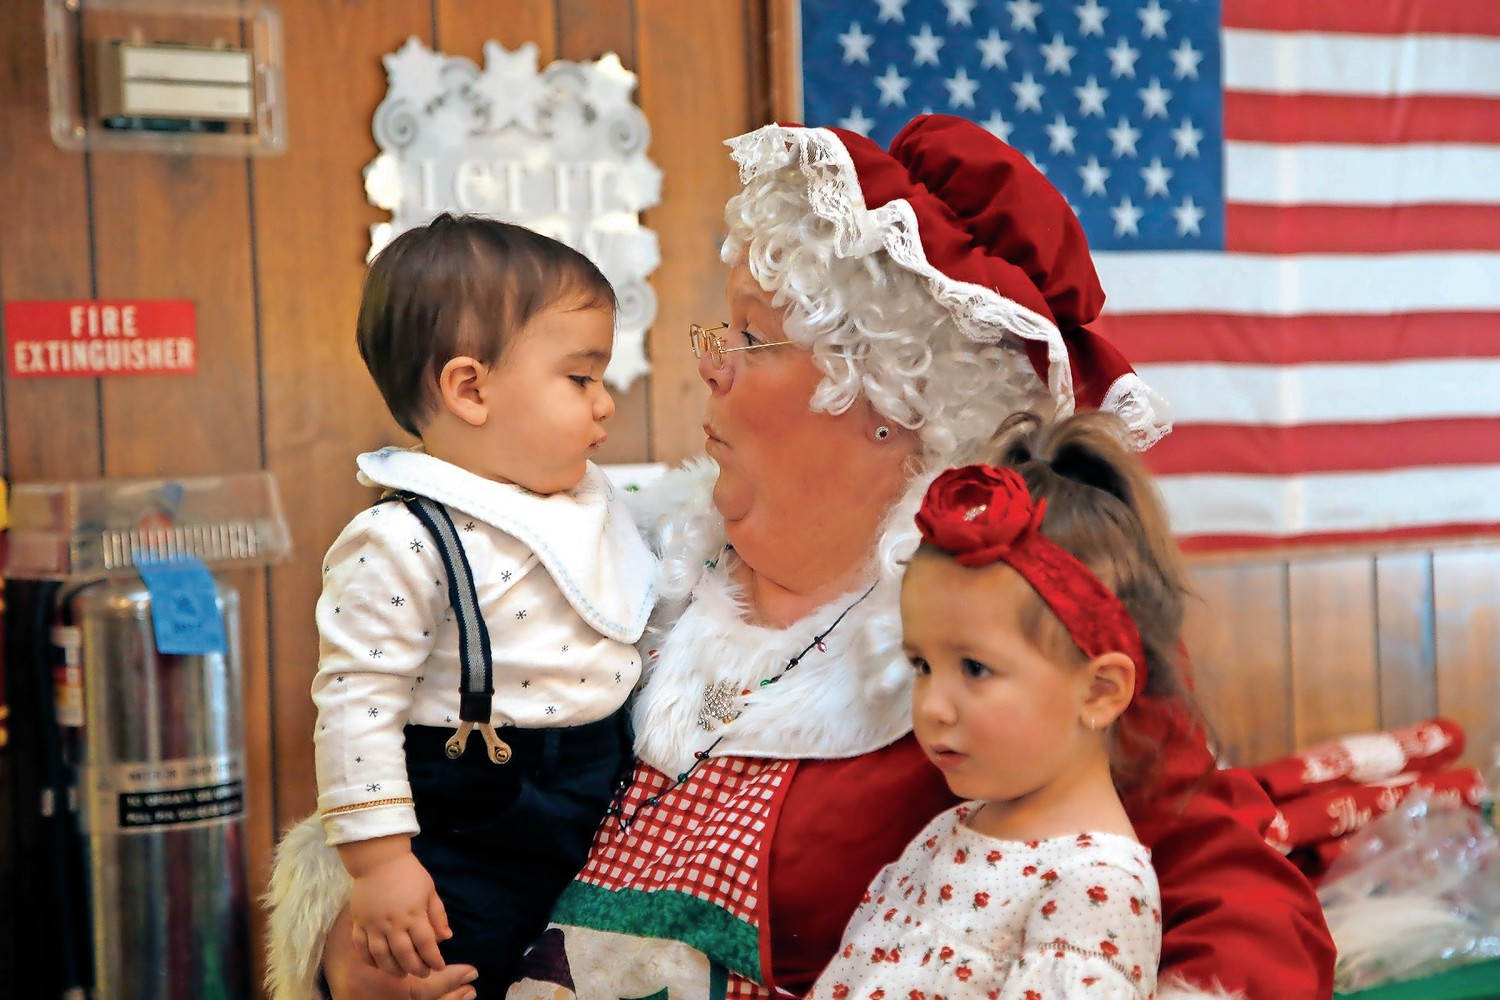 One-year old Antonio Cervoni and his sister, Alessia, 2, met Mrs. Claus.